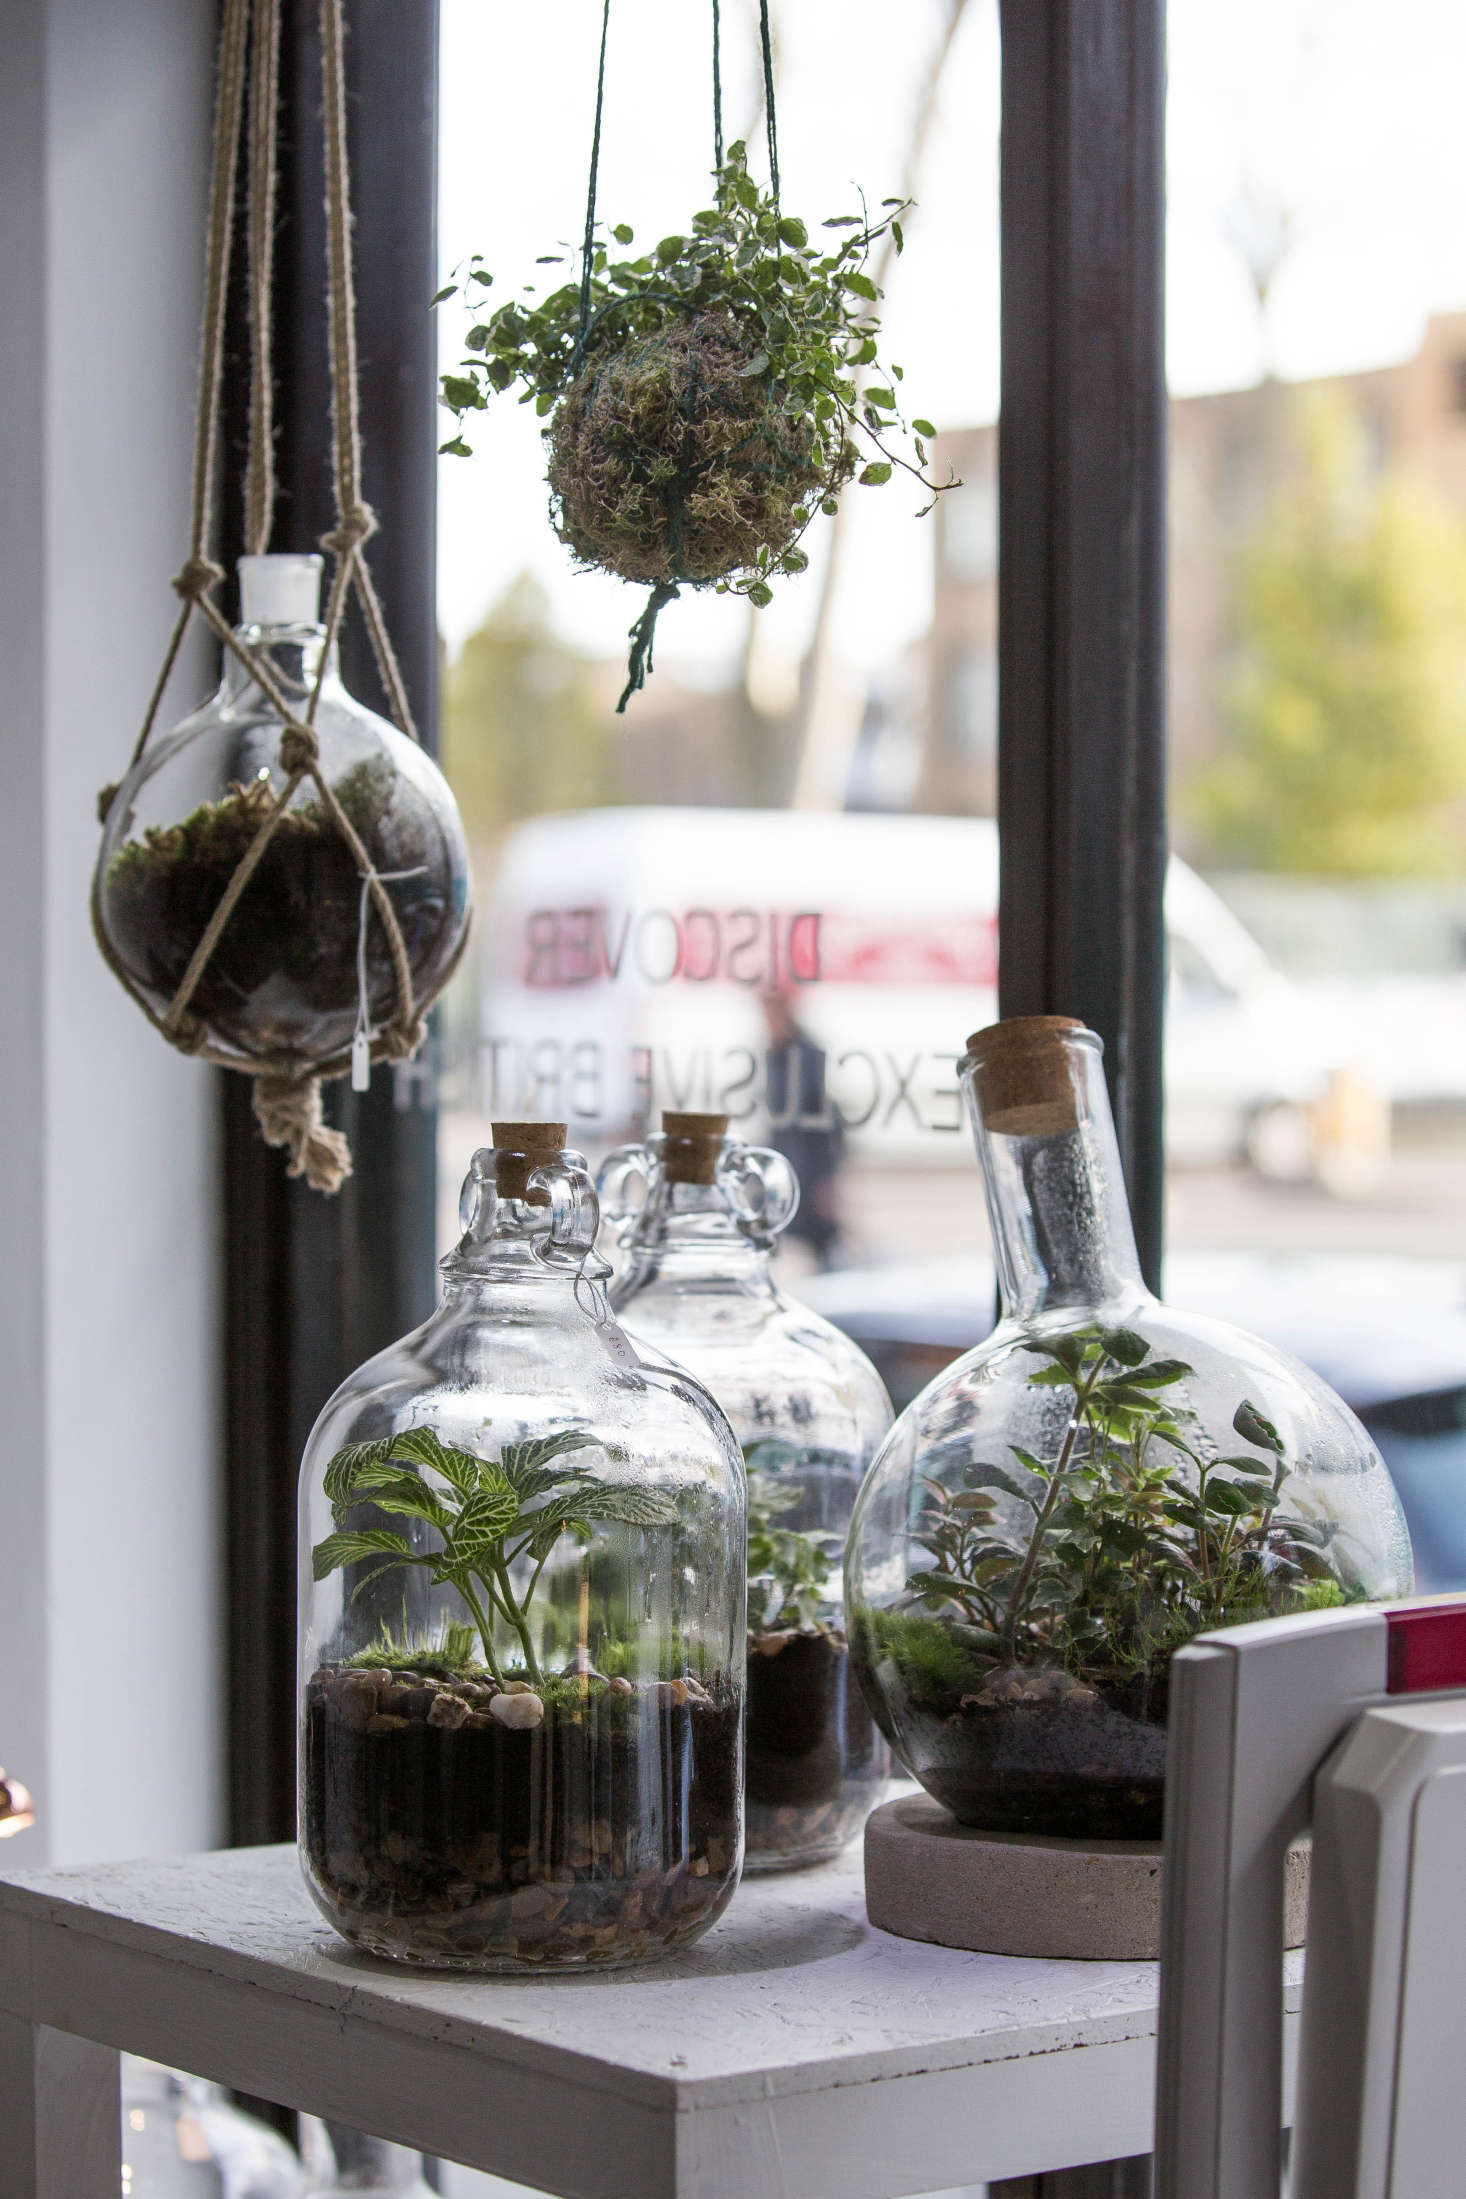 When Terrariums Go Bad 6 Tips For Troubleshooting Mold Yecch Gardenista